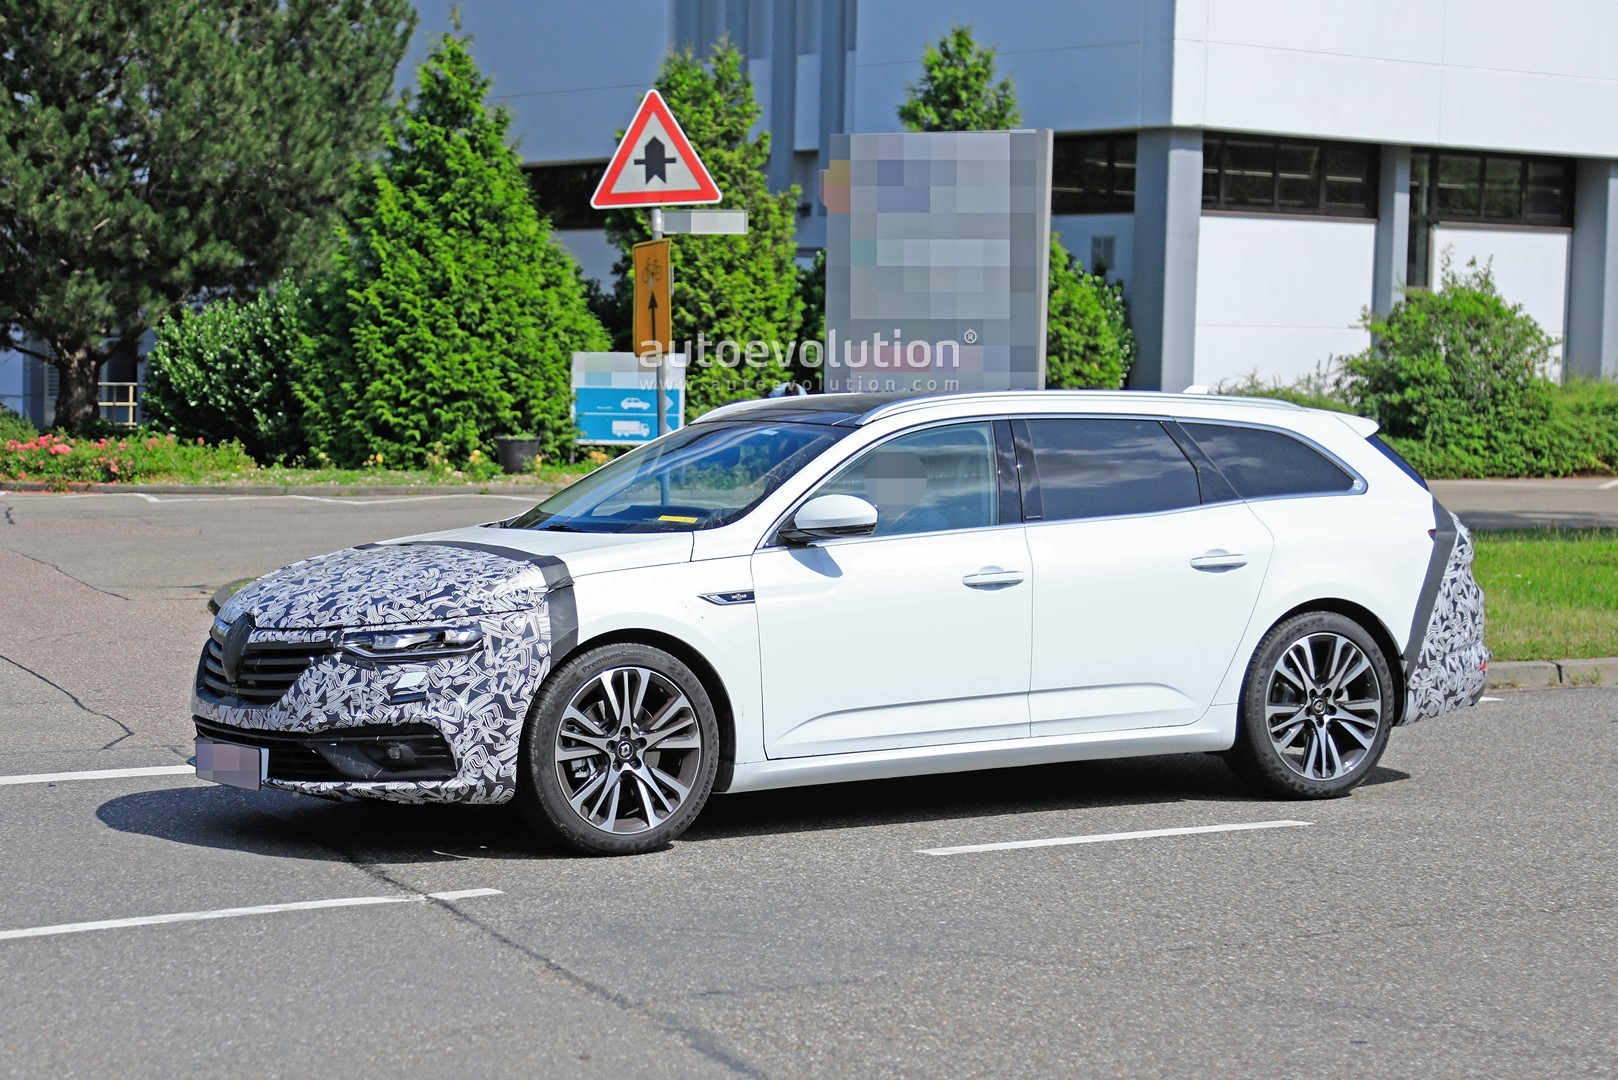 2020 - [Renault] Talisman restylée - Page 8 2021-renault-talisman-wagon-spied-for-the-first-time-with-facelift_4